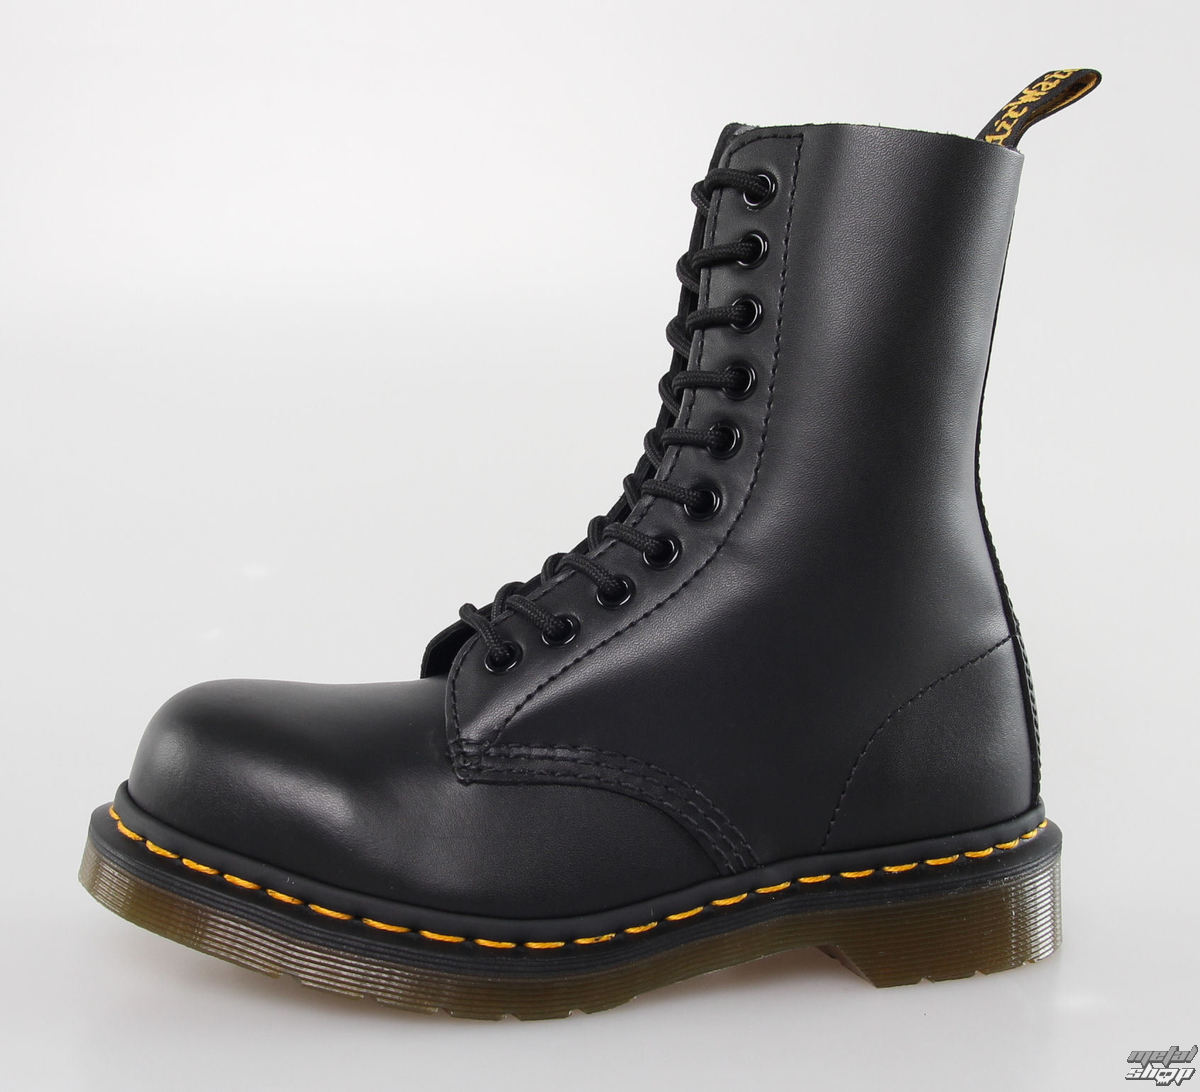 0a7a87abf5dc8 boots DR. MARTENS - 10 eyelet - 1919 - BLACK FINE Haircell - metal ...